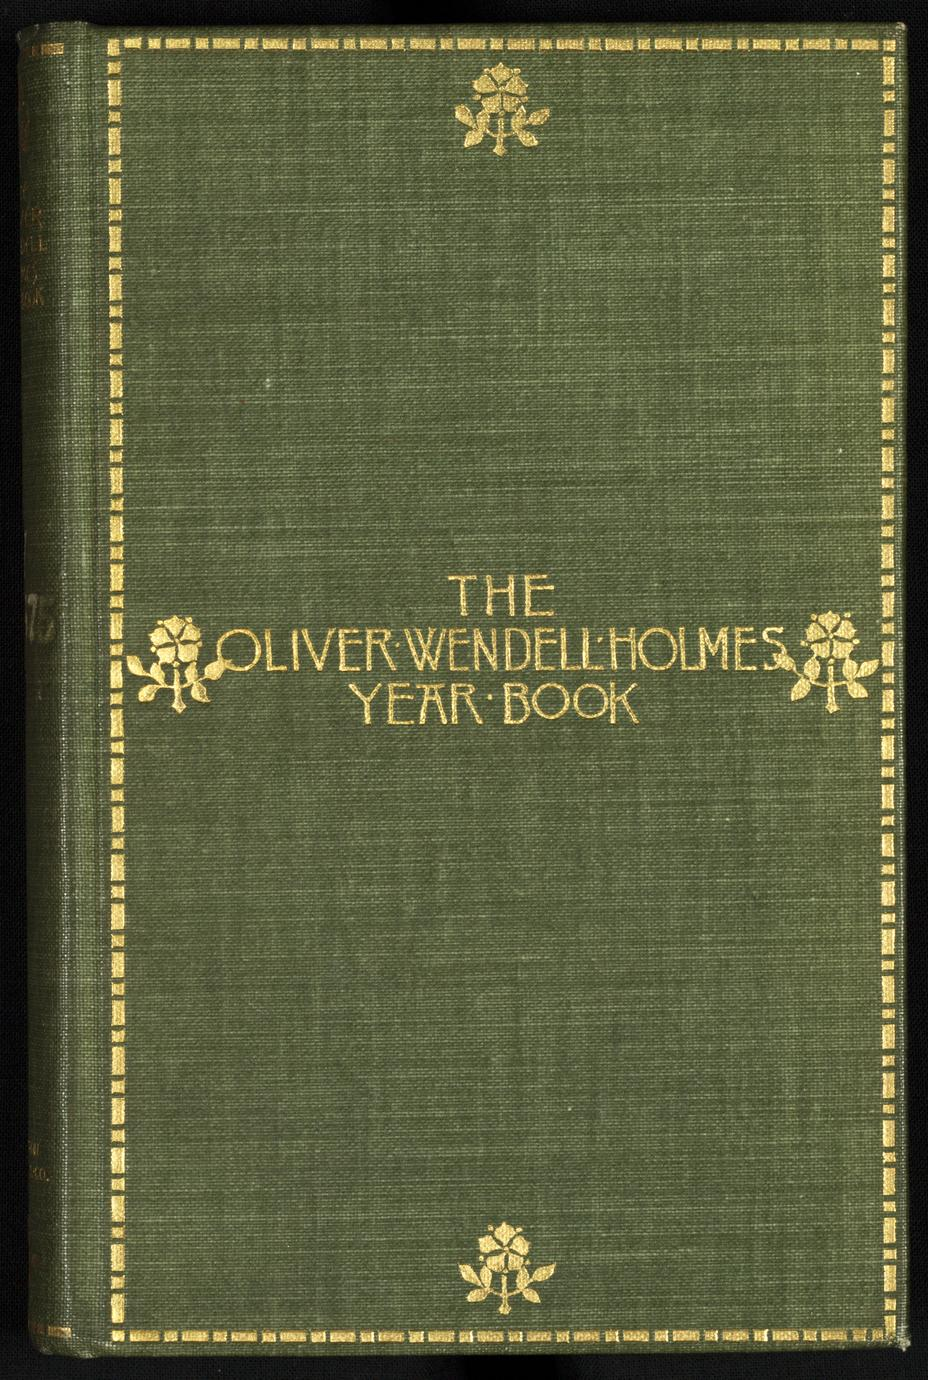 The Oliver Wendell Holmes year book (1 of 2)